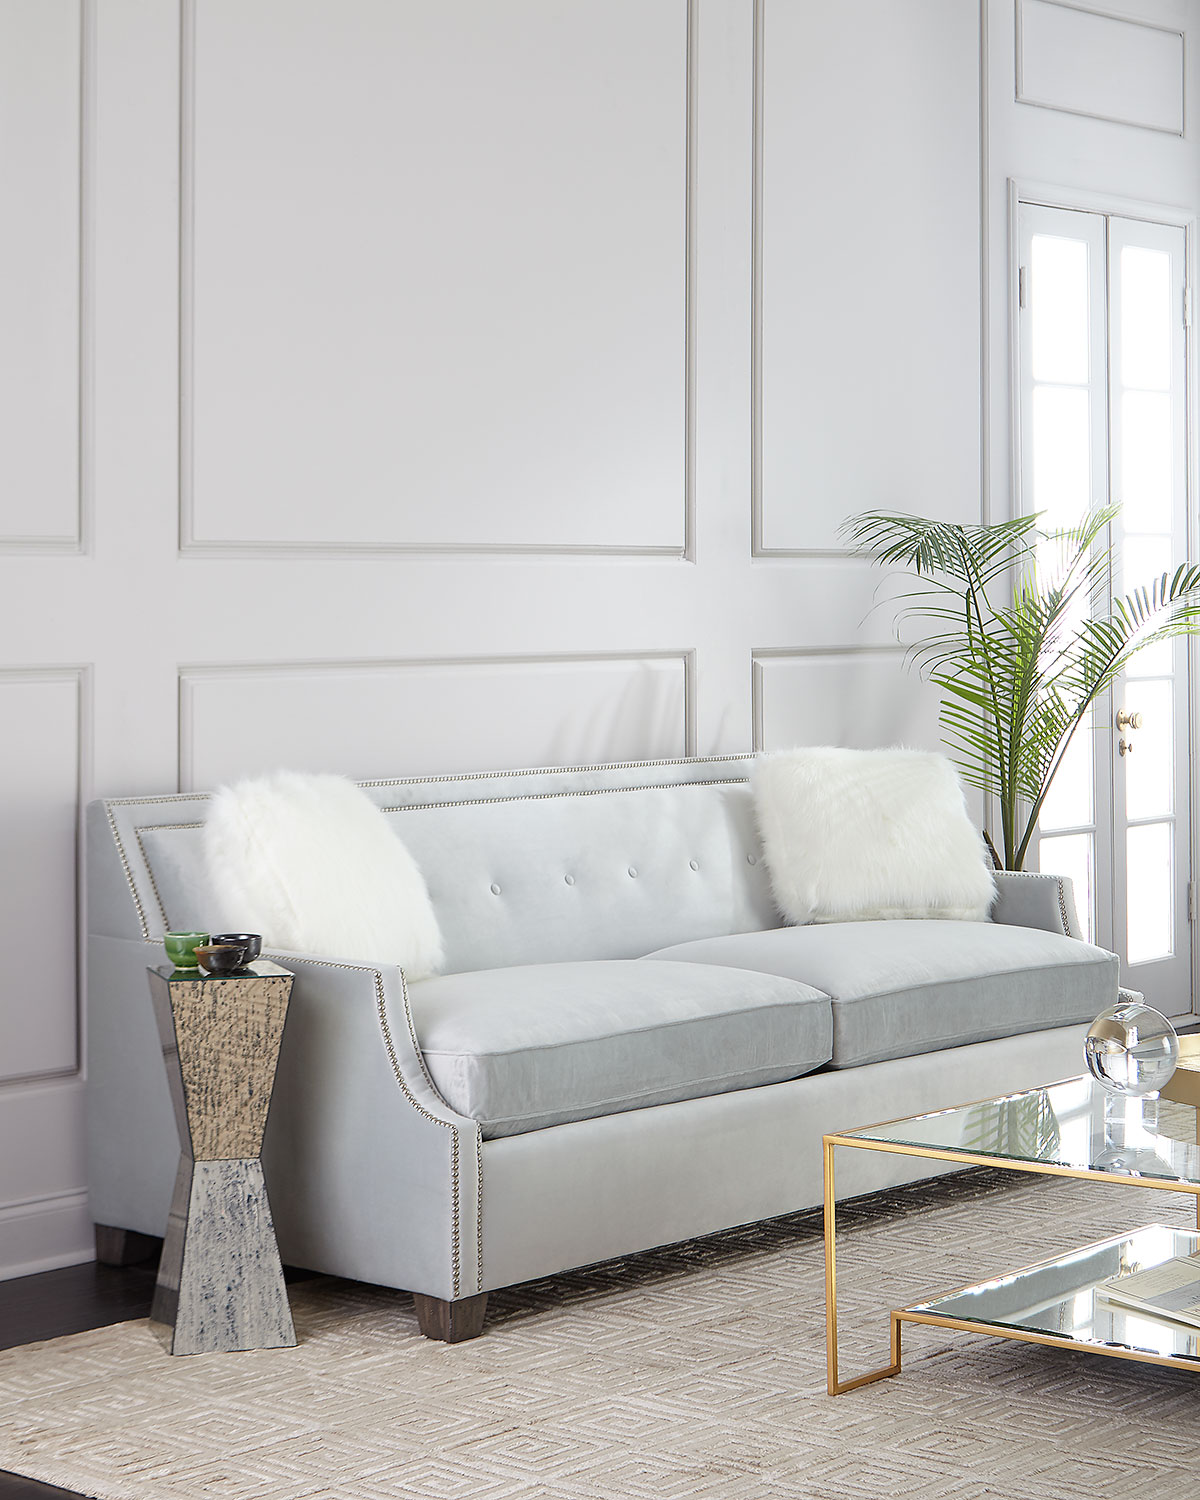 Admirable Franco Queen Sleeper Sofa 86 5 Download Free Architecture Designs Sospemadebymaigaardcom